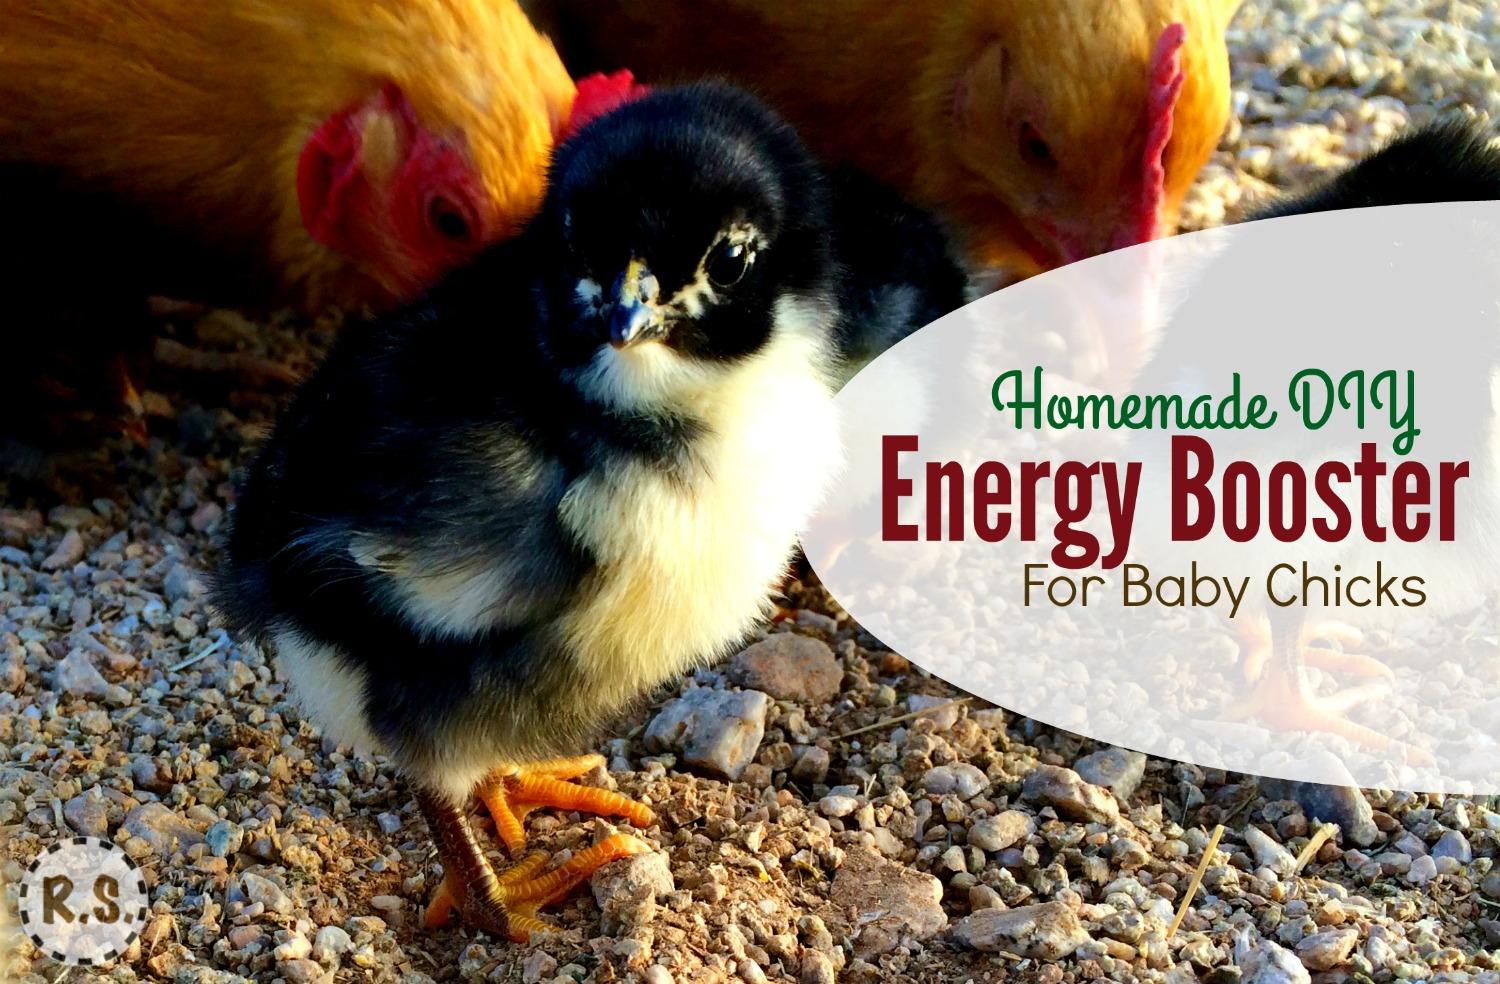 Raising baby chicks? Here's a DIY energy booster or electrolyte recipe you can put in their water. Great for their health & easy for beginners. Important to getting your chicks off to a great start!